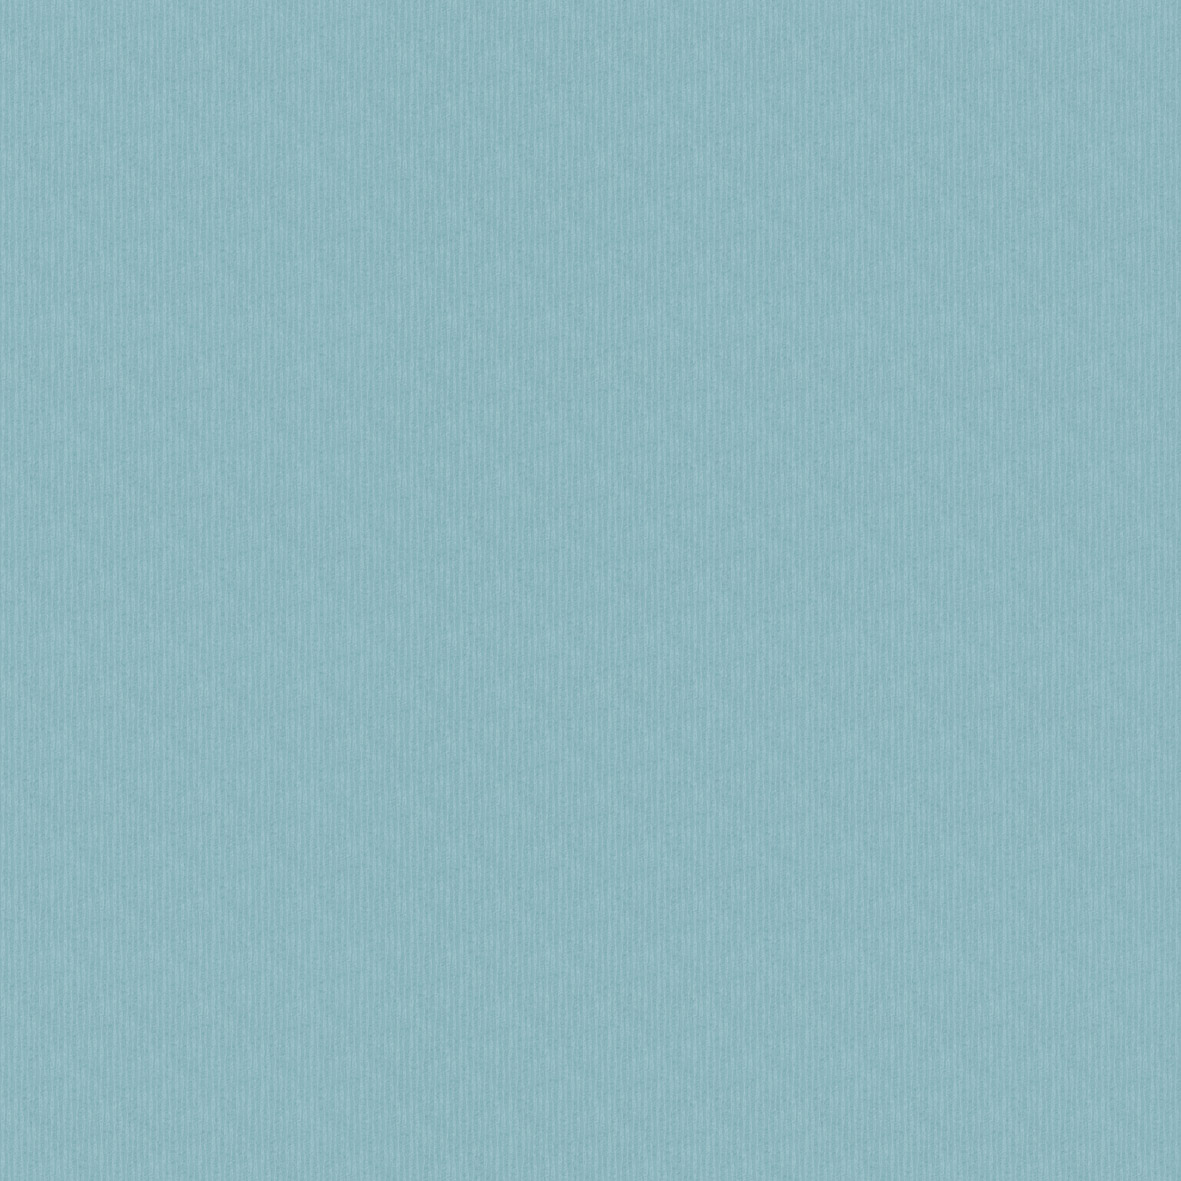 Roller_Swatch_Ribbons_asc_Teal_RE36467